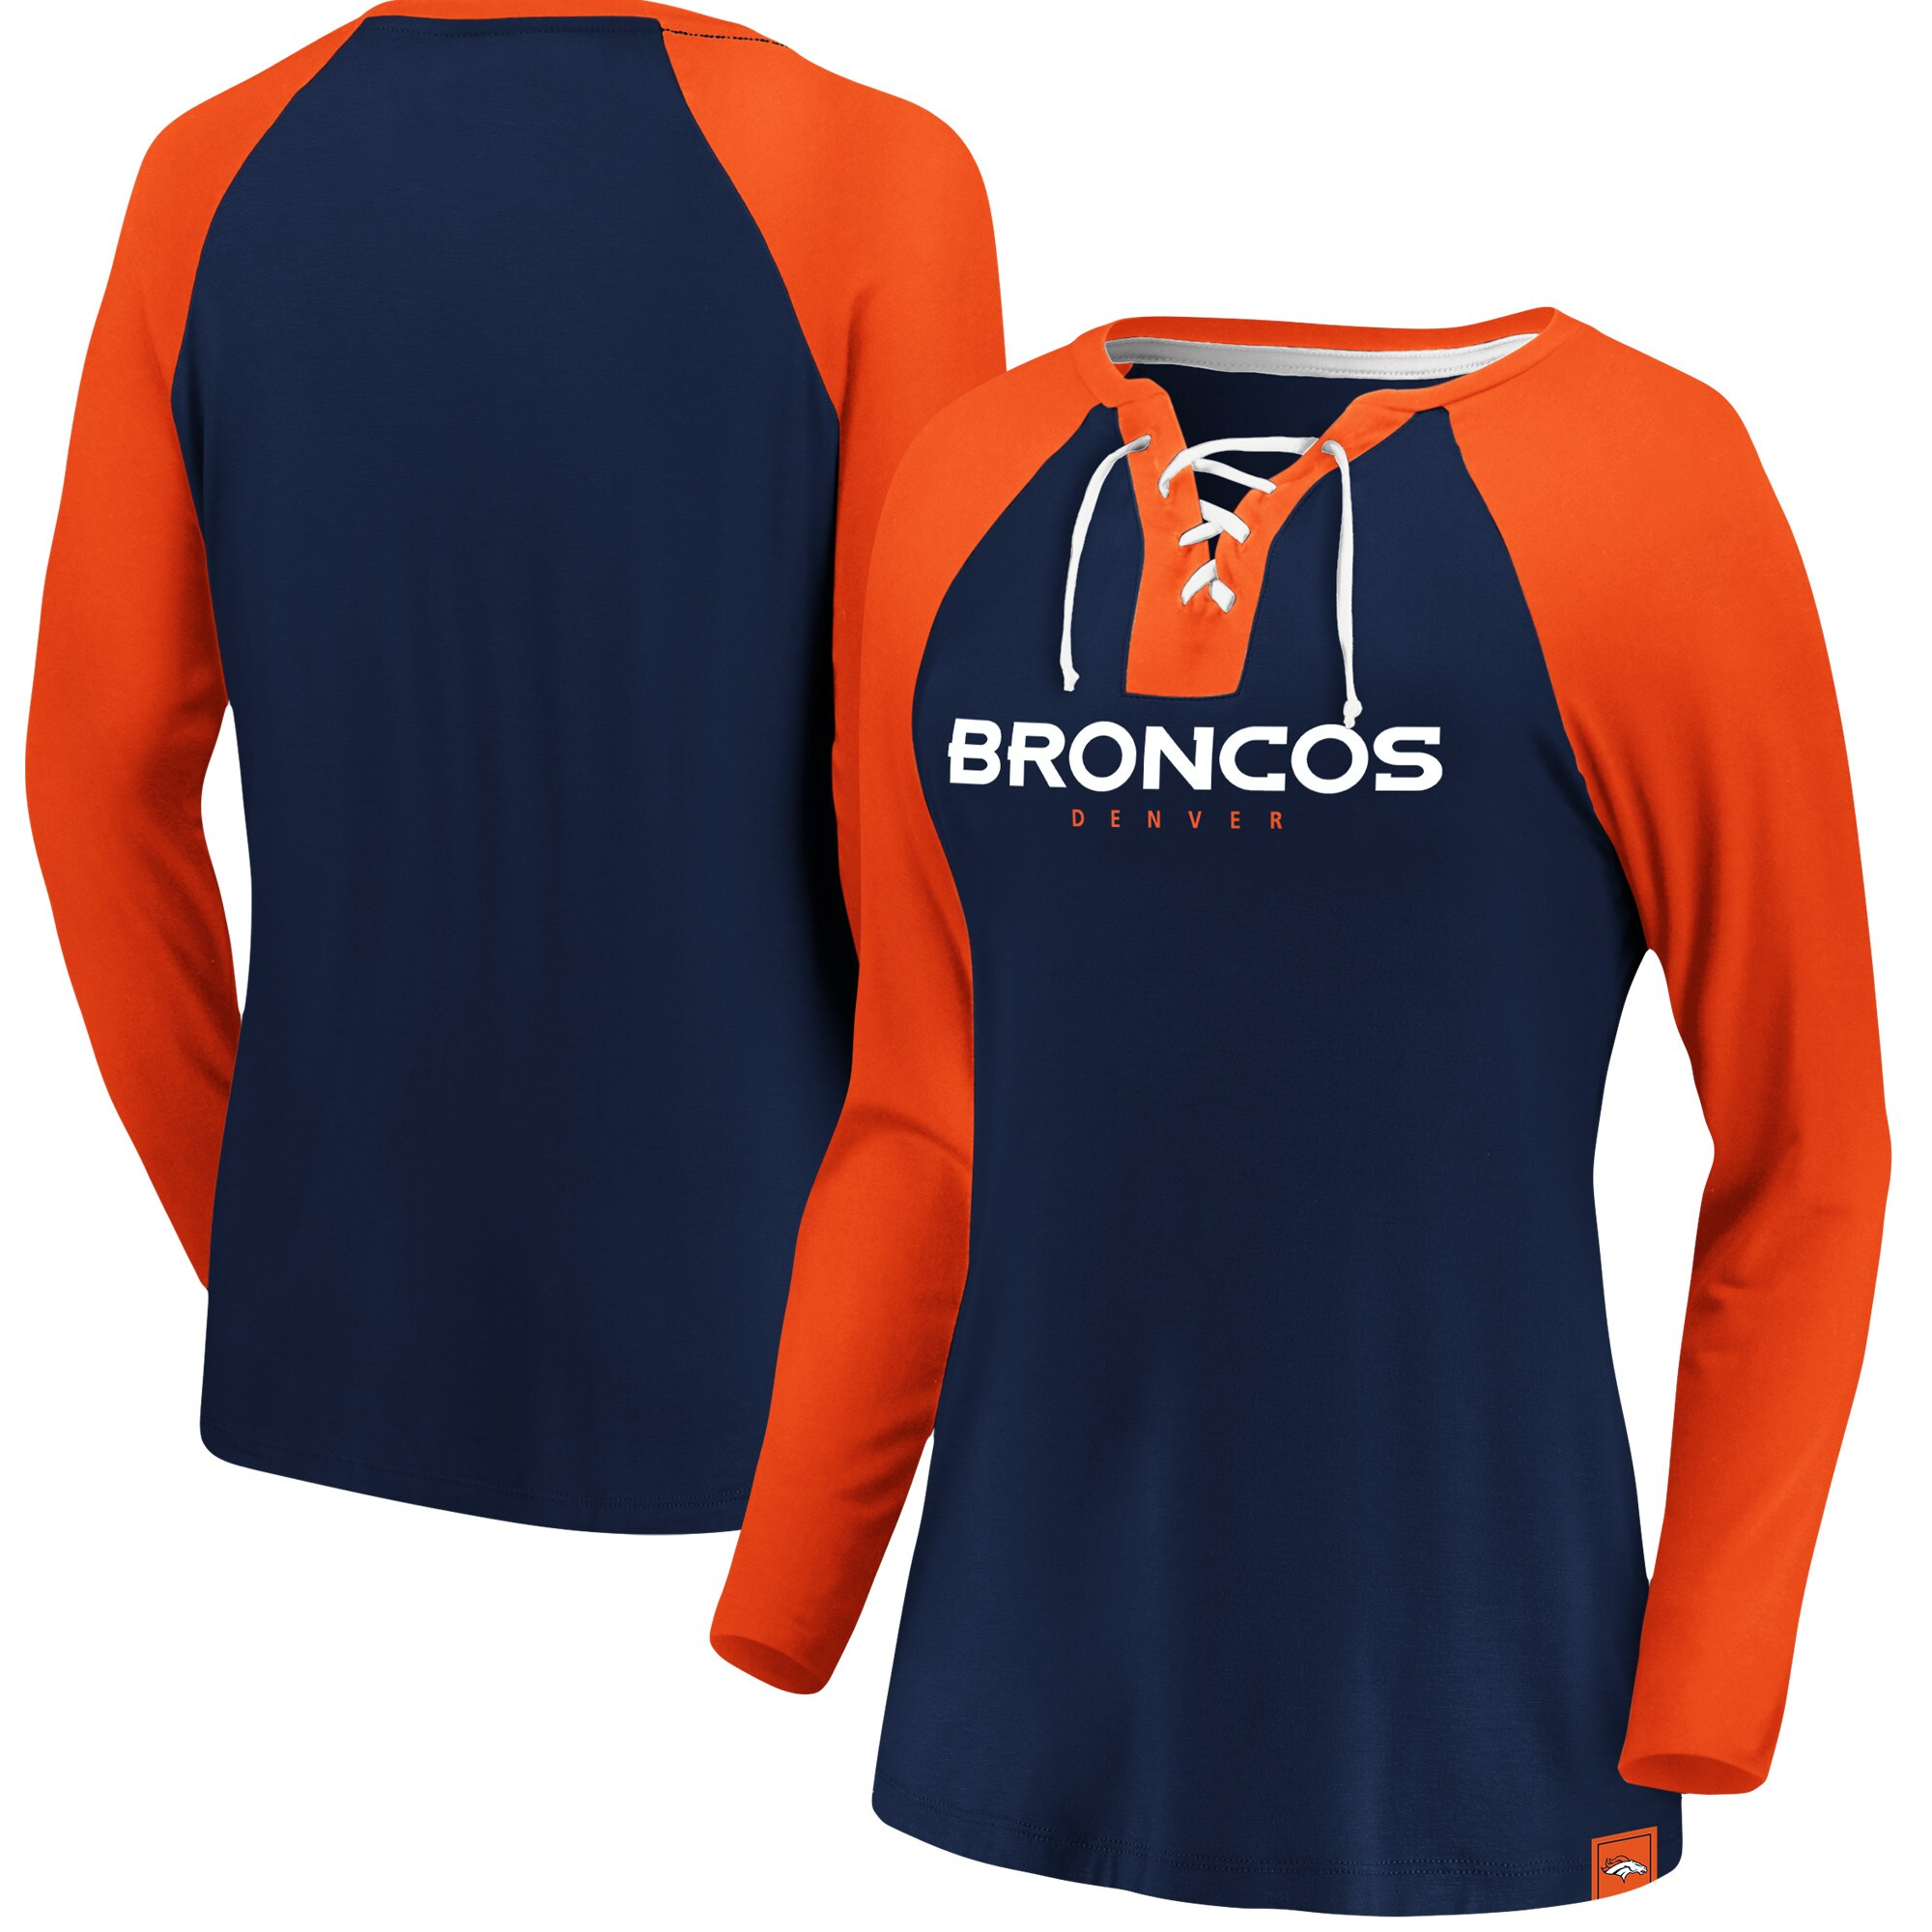 Denver Broncos NFL Pro Line by Fanatics Branded Women's Break Out Play Lace-Up V-Neck Raglan Long Sleeve T-Shirt - Navy/Orange